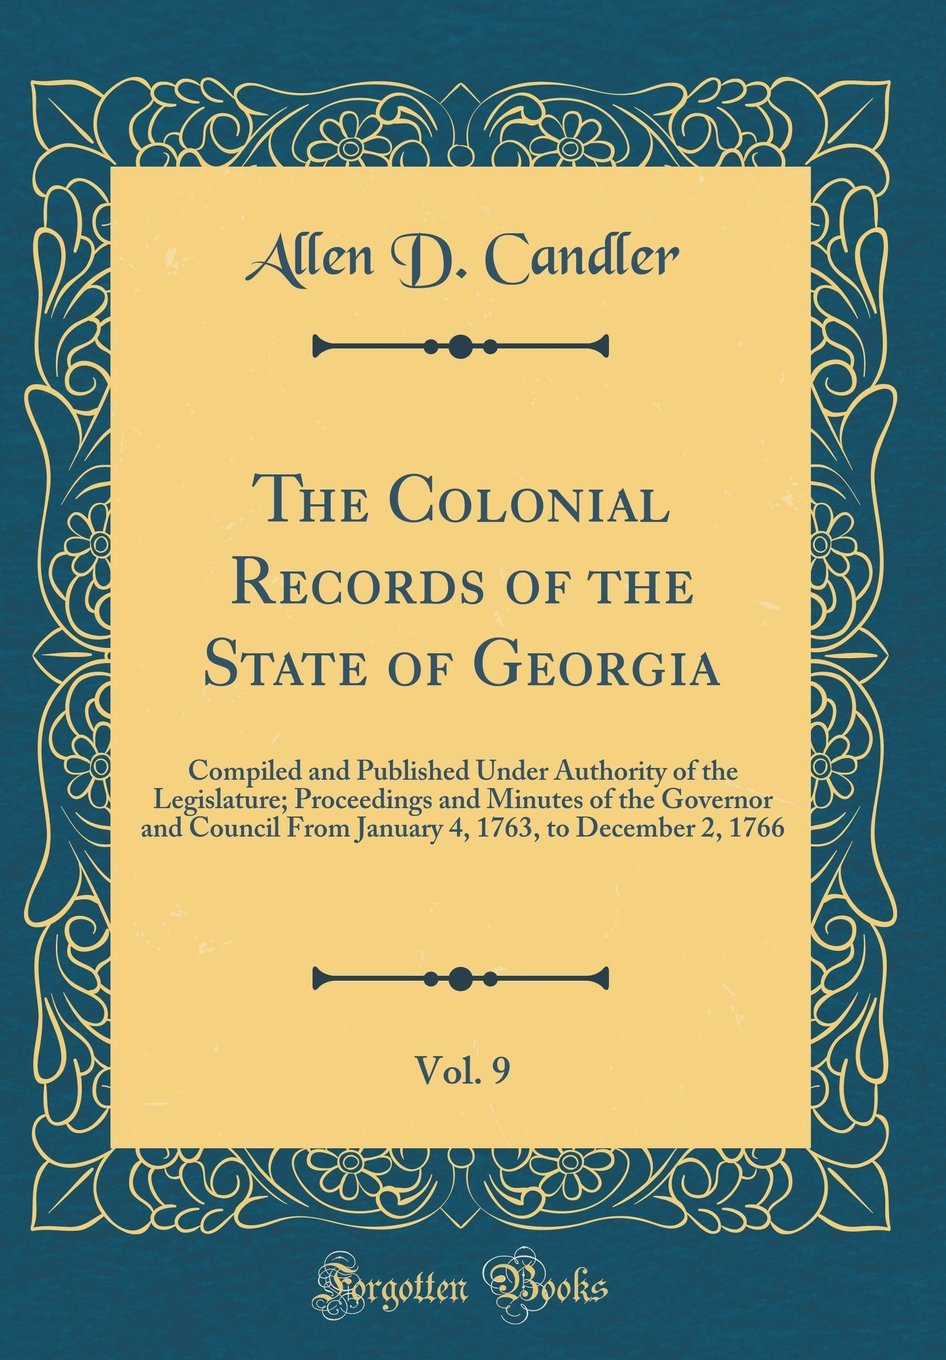 Read Online The Colonial Records of the State of Georgia, Vol. 9: Compiled and Published Under Authority of the Legislature; Proceedings and Minutes of the ... 1763, to December 2, 1766 (Classic Reprint) ebook